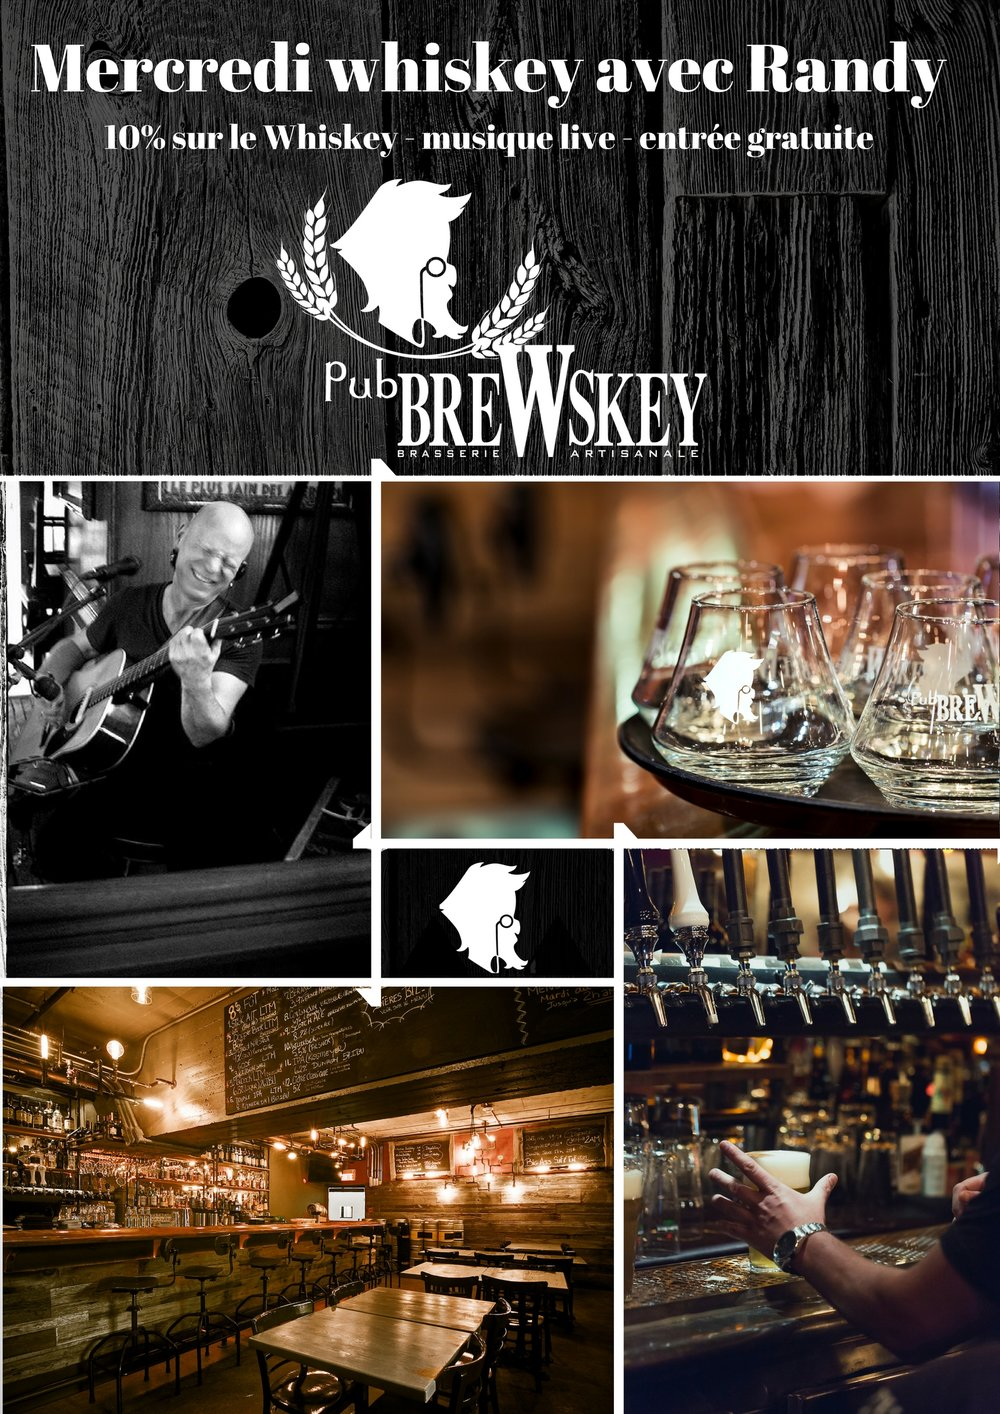 Whiskey wednesday with Randy - Come try some amazing whiskeys and enjoy 10% off on them.